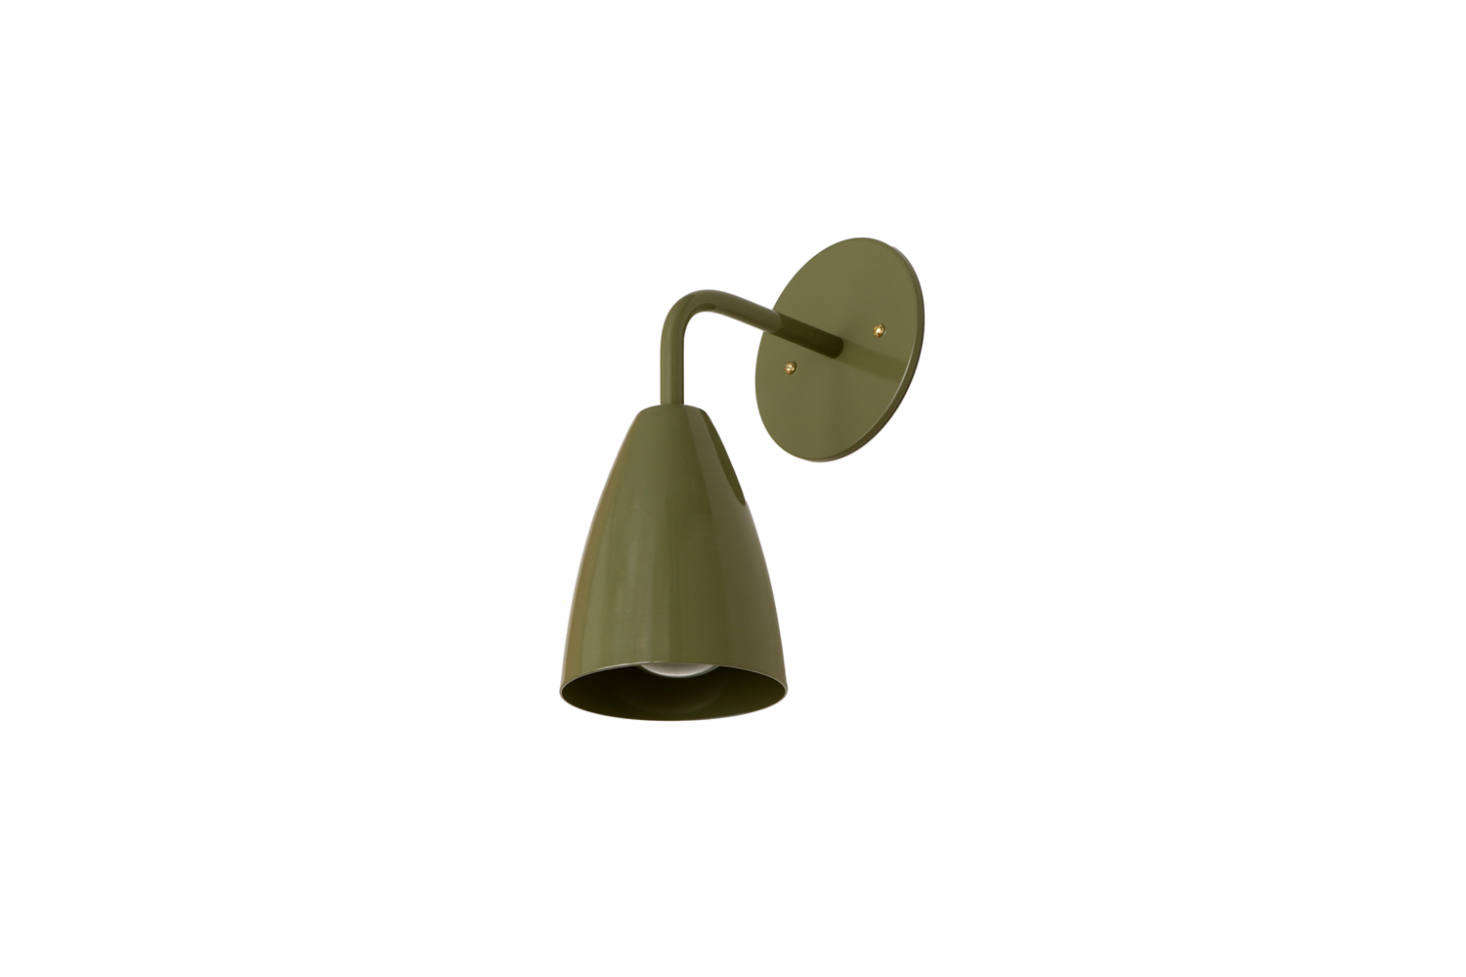 From OneFortyThree, the Shaded Sconce in Solid Colors (shown in Cactus) is $155 directly from OneFortyThree.